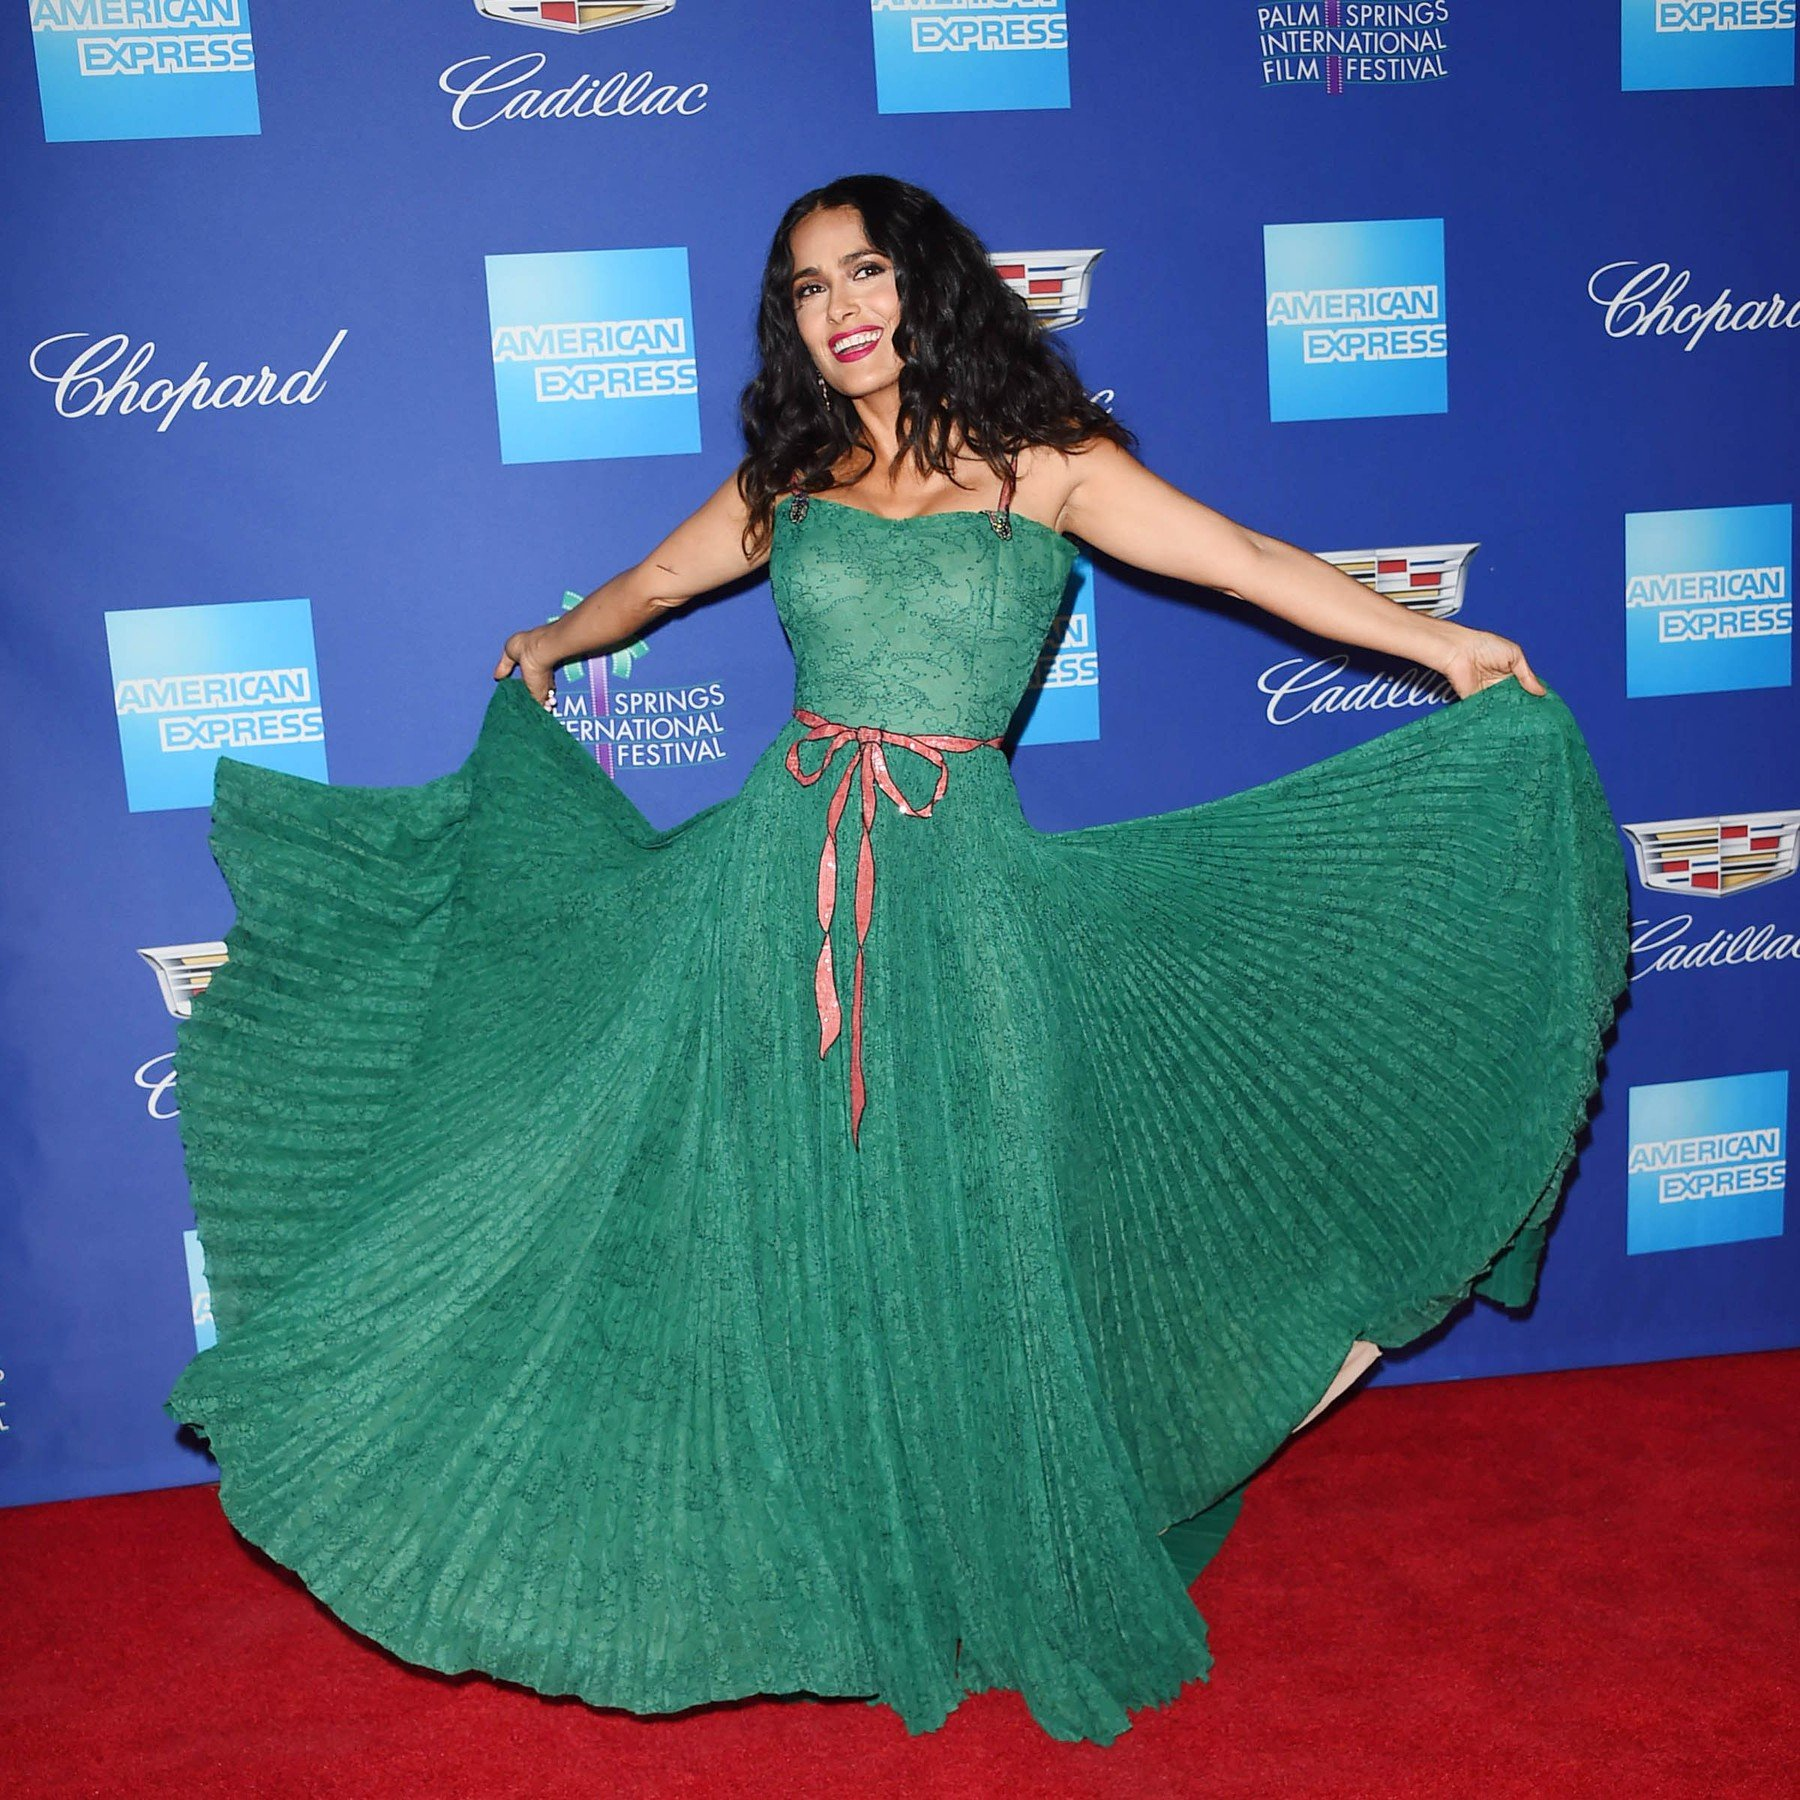 , Palm Springs, CA -20180102 - The 29th Palm Springs International Film Festival: Awards Gala at Palm Springs Convention Center  -PICTURED: Salma Hayek -, Image: 359088595, License: Rights-managed, Restrictions: , Model Release: no, Credit line: Profimedia, INSTAR Images